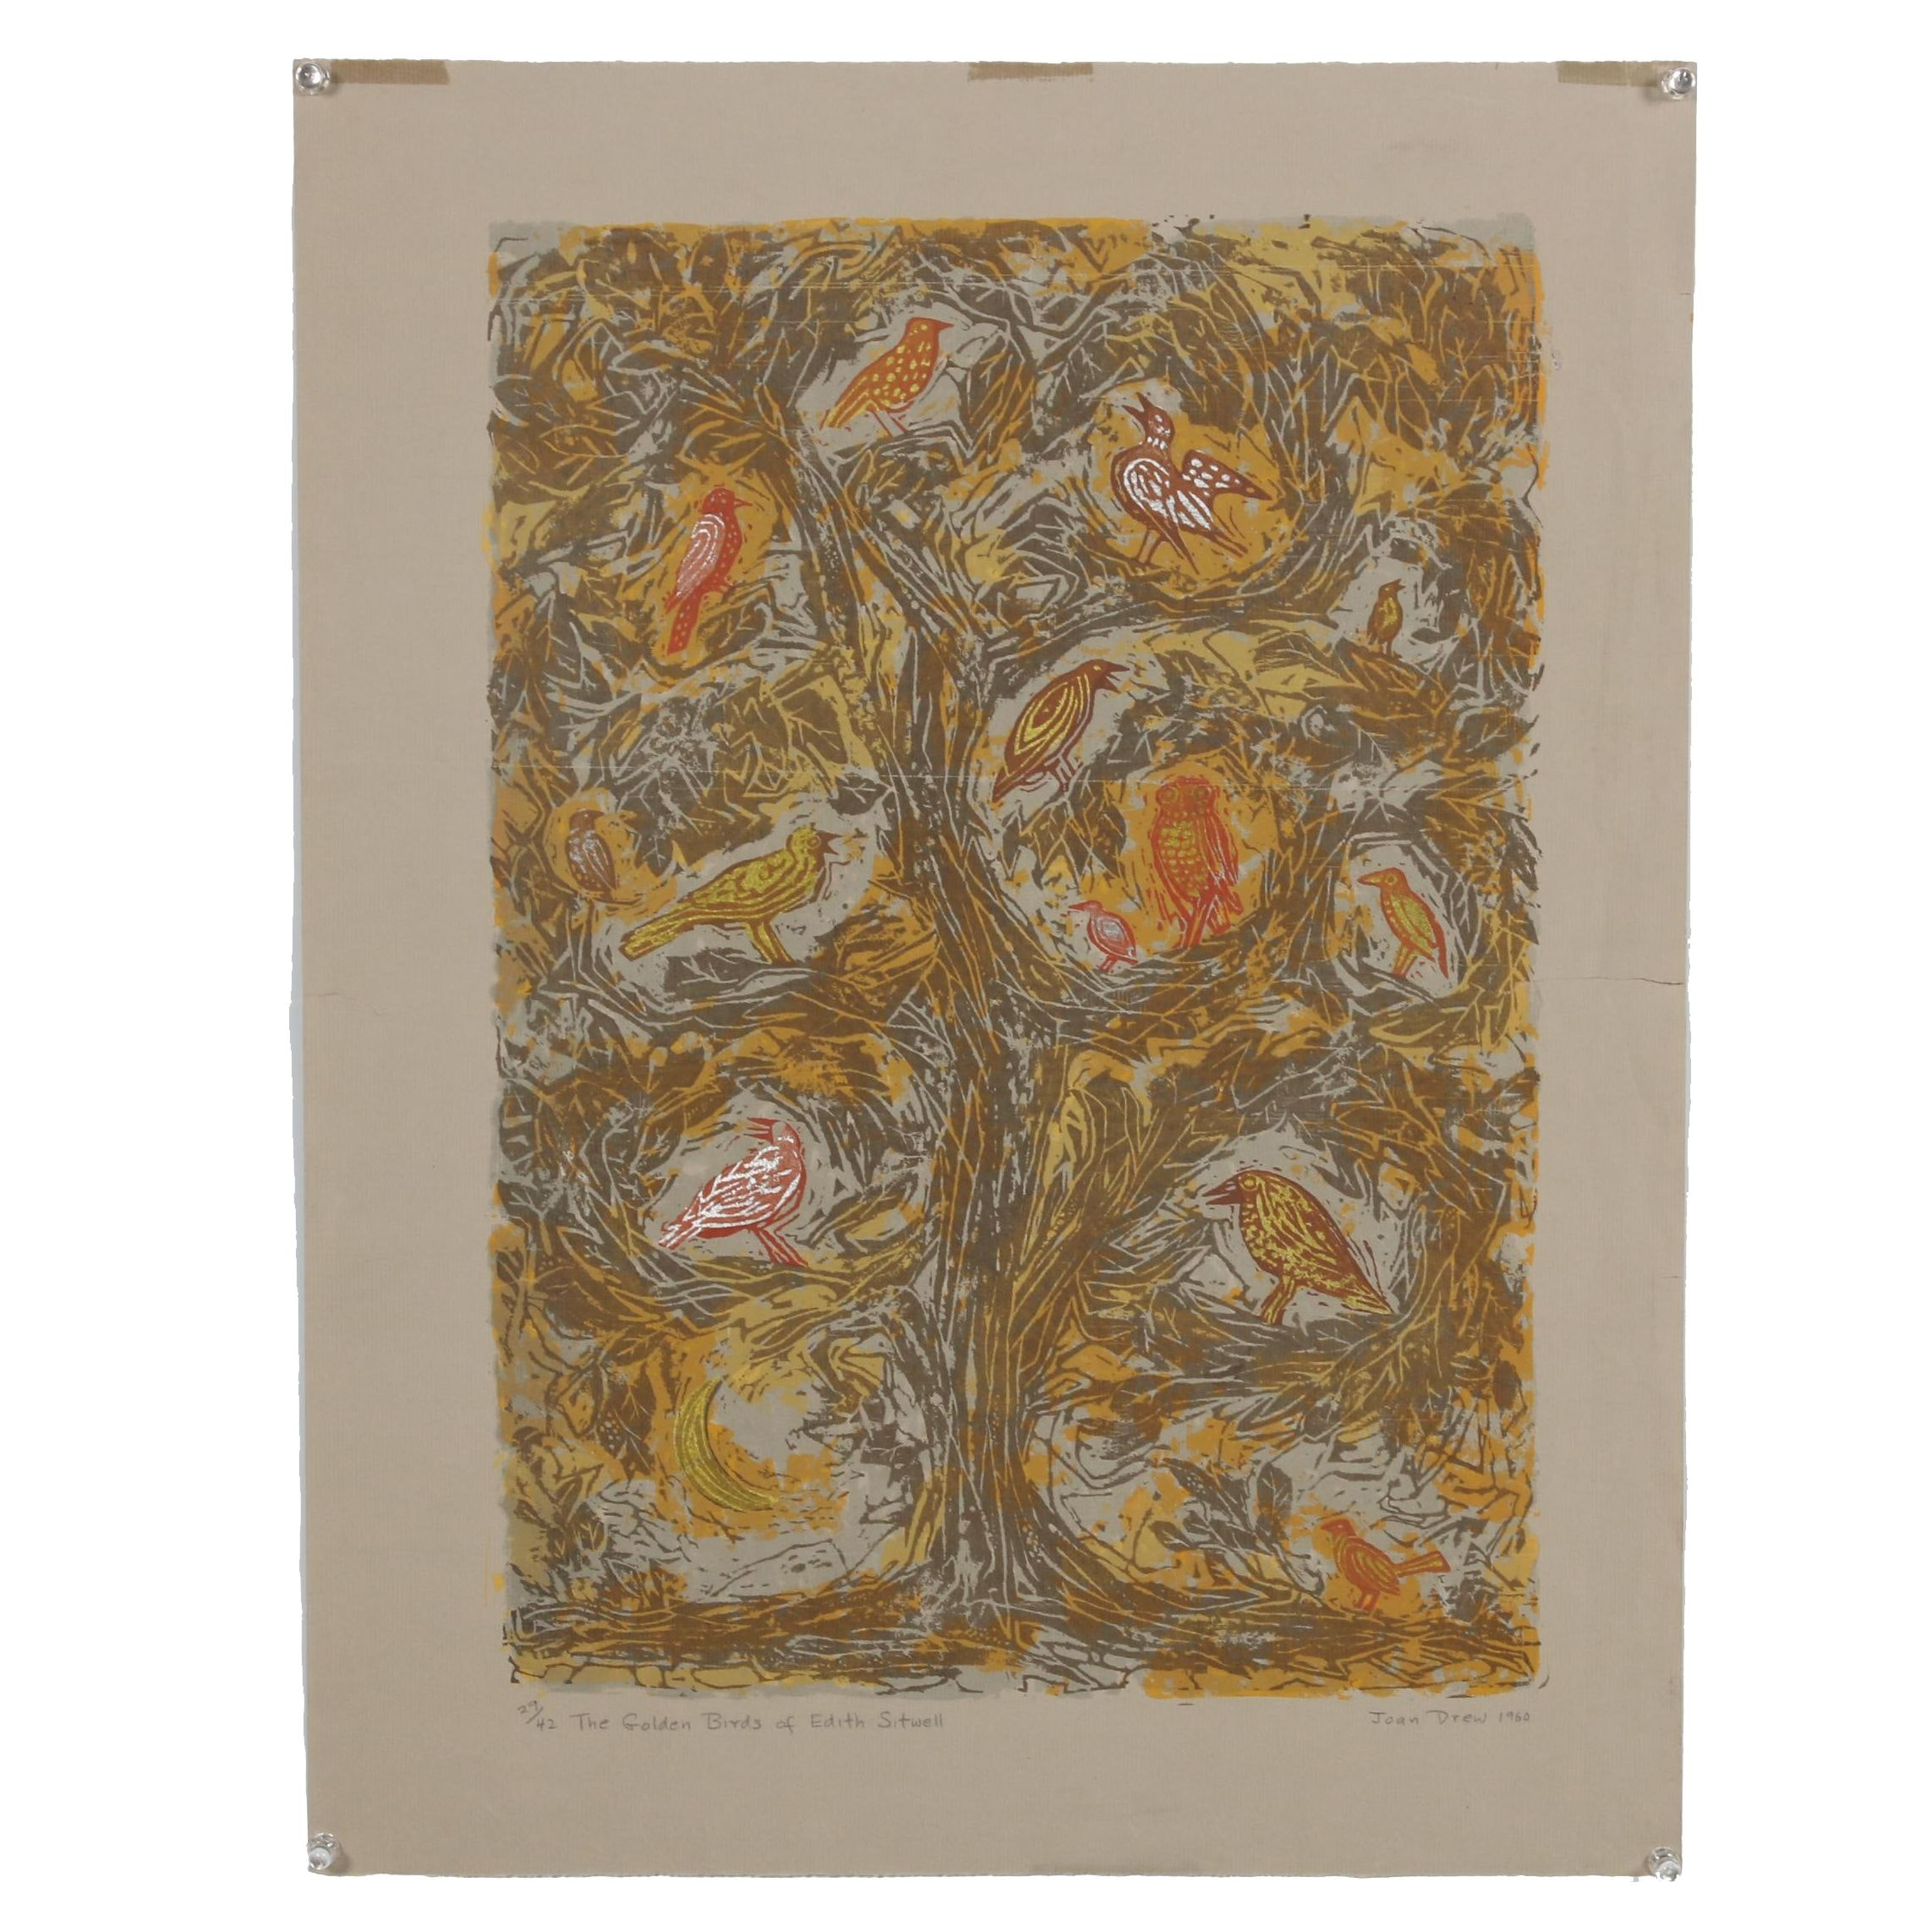 "Joan Drew Embellished Serigraph ""The Golden Birds of Edith Sitwell"""